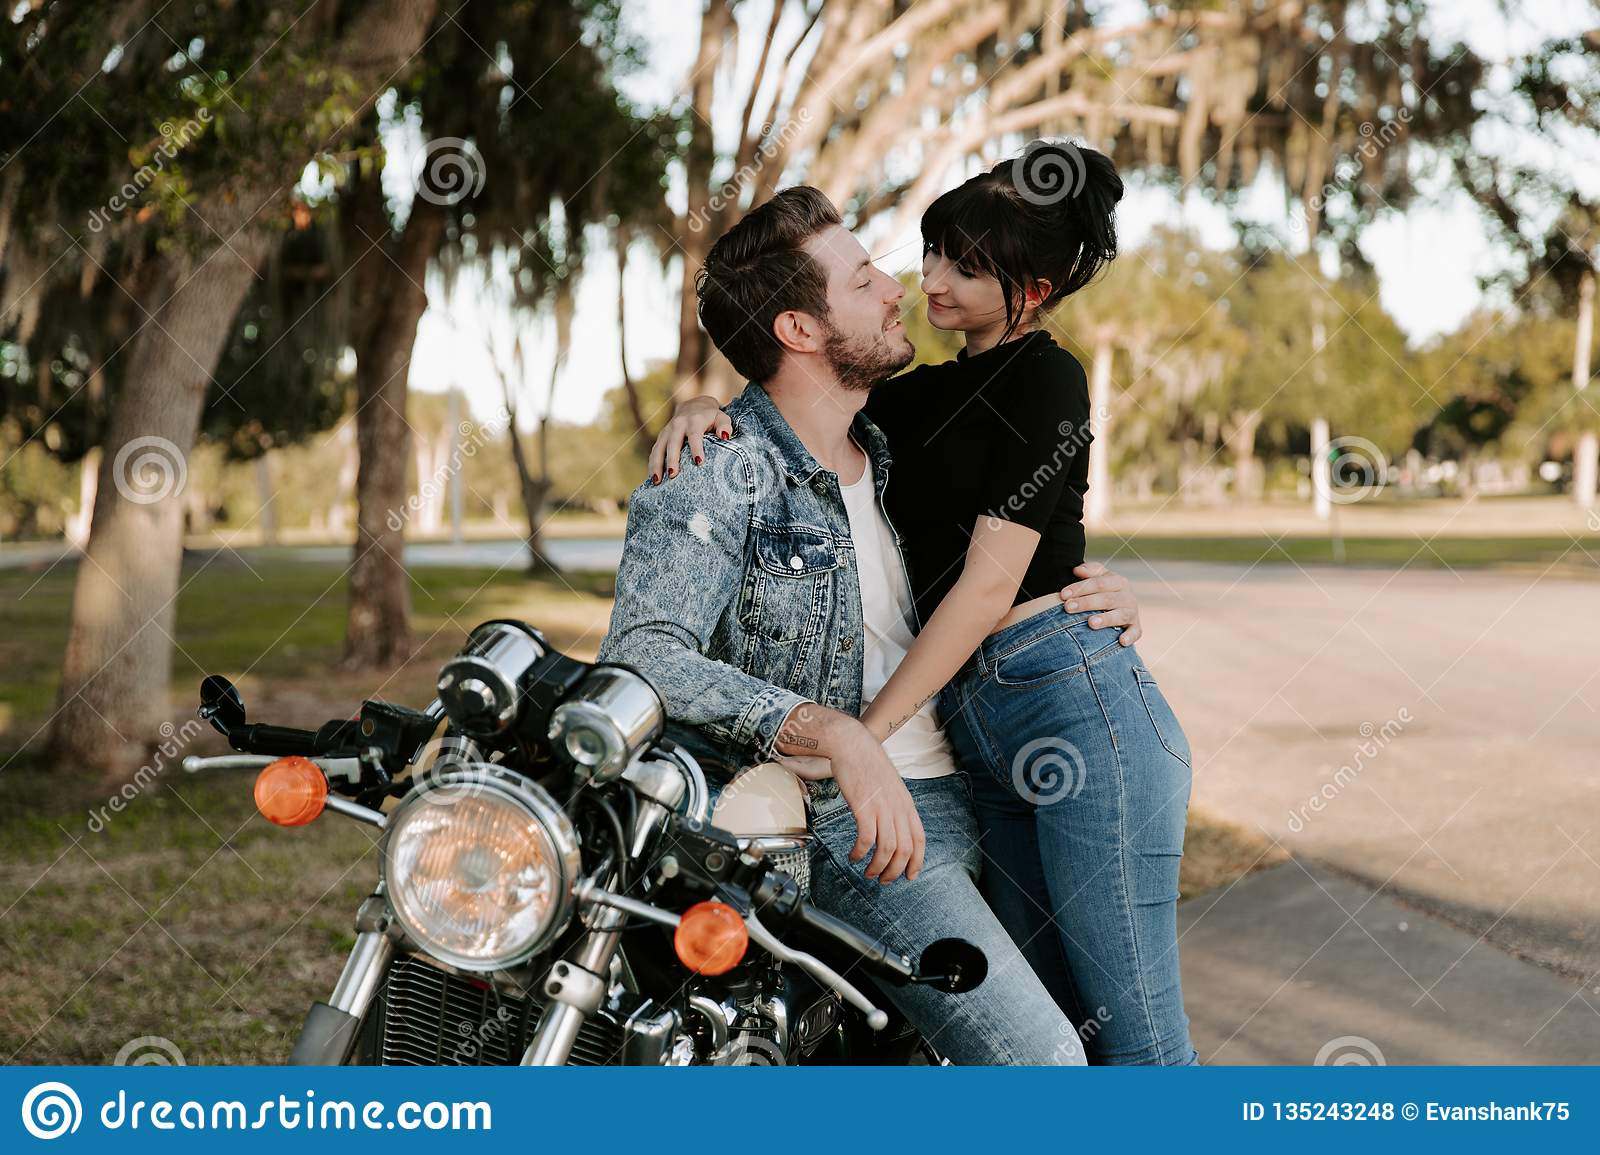 Loving Adorable Portrait of two Attractive Good Looking Young Adult Modern Fashionable People Guy Girl Couple Kissing and Hugging